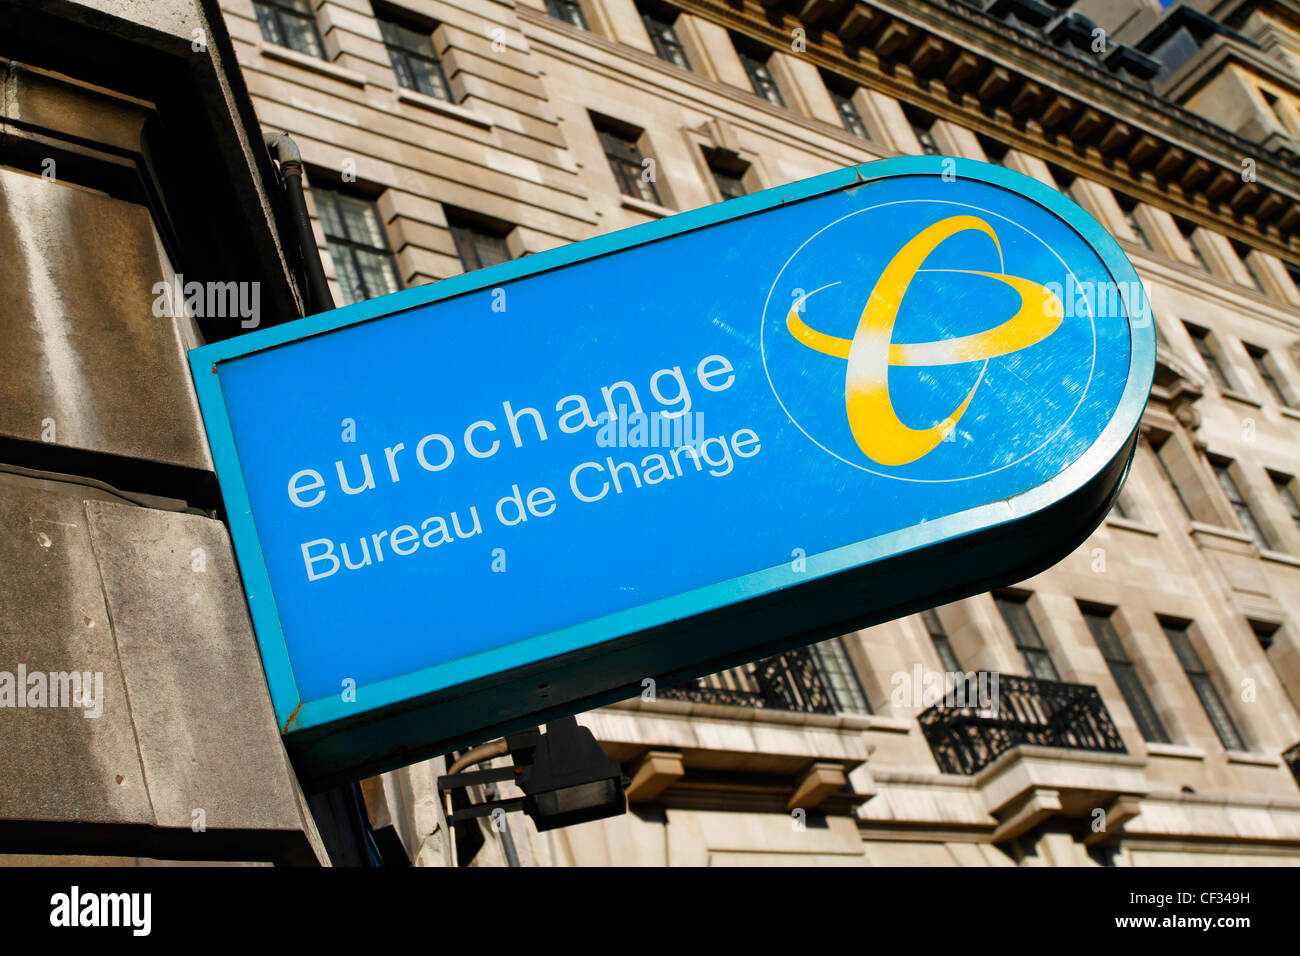 Eurochange Bureau de Change sign. - Stock Image